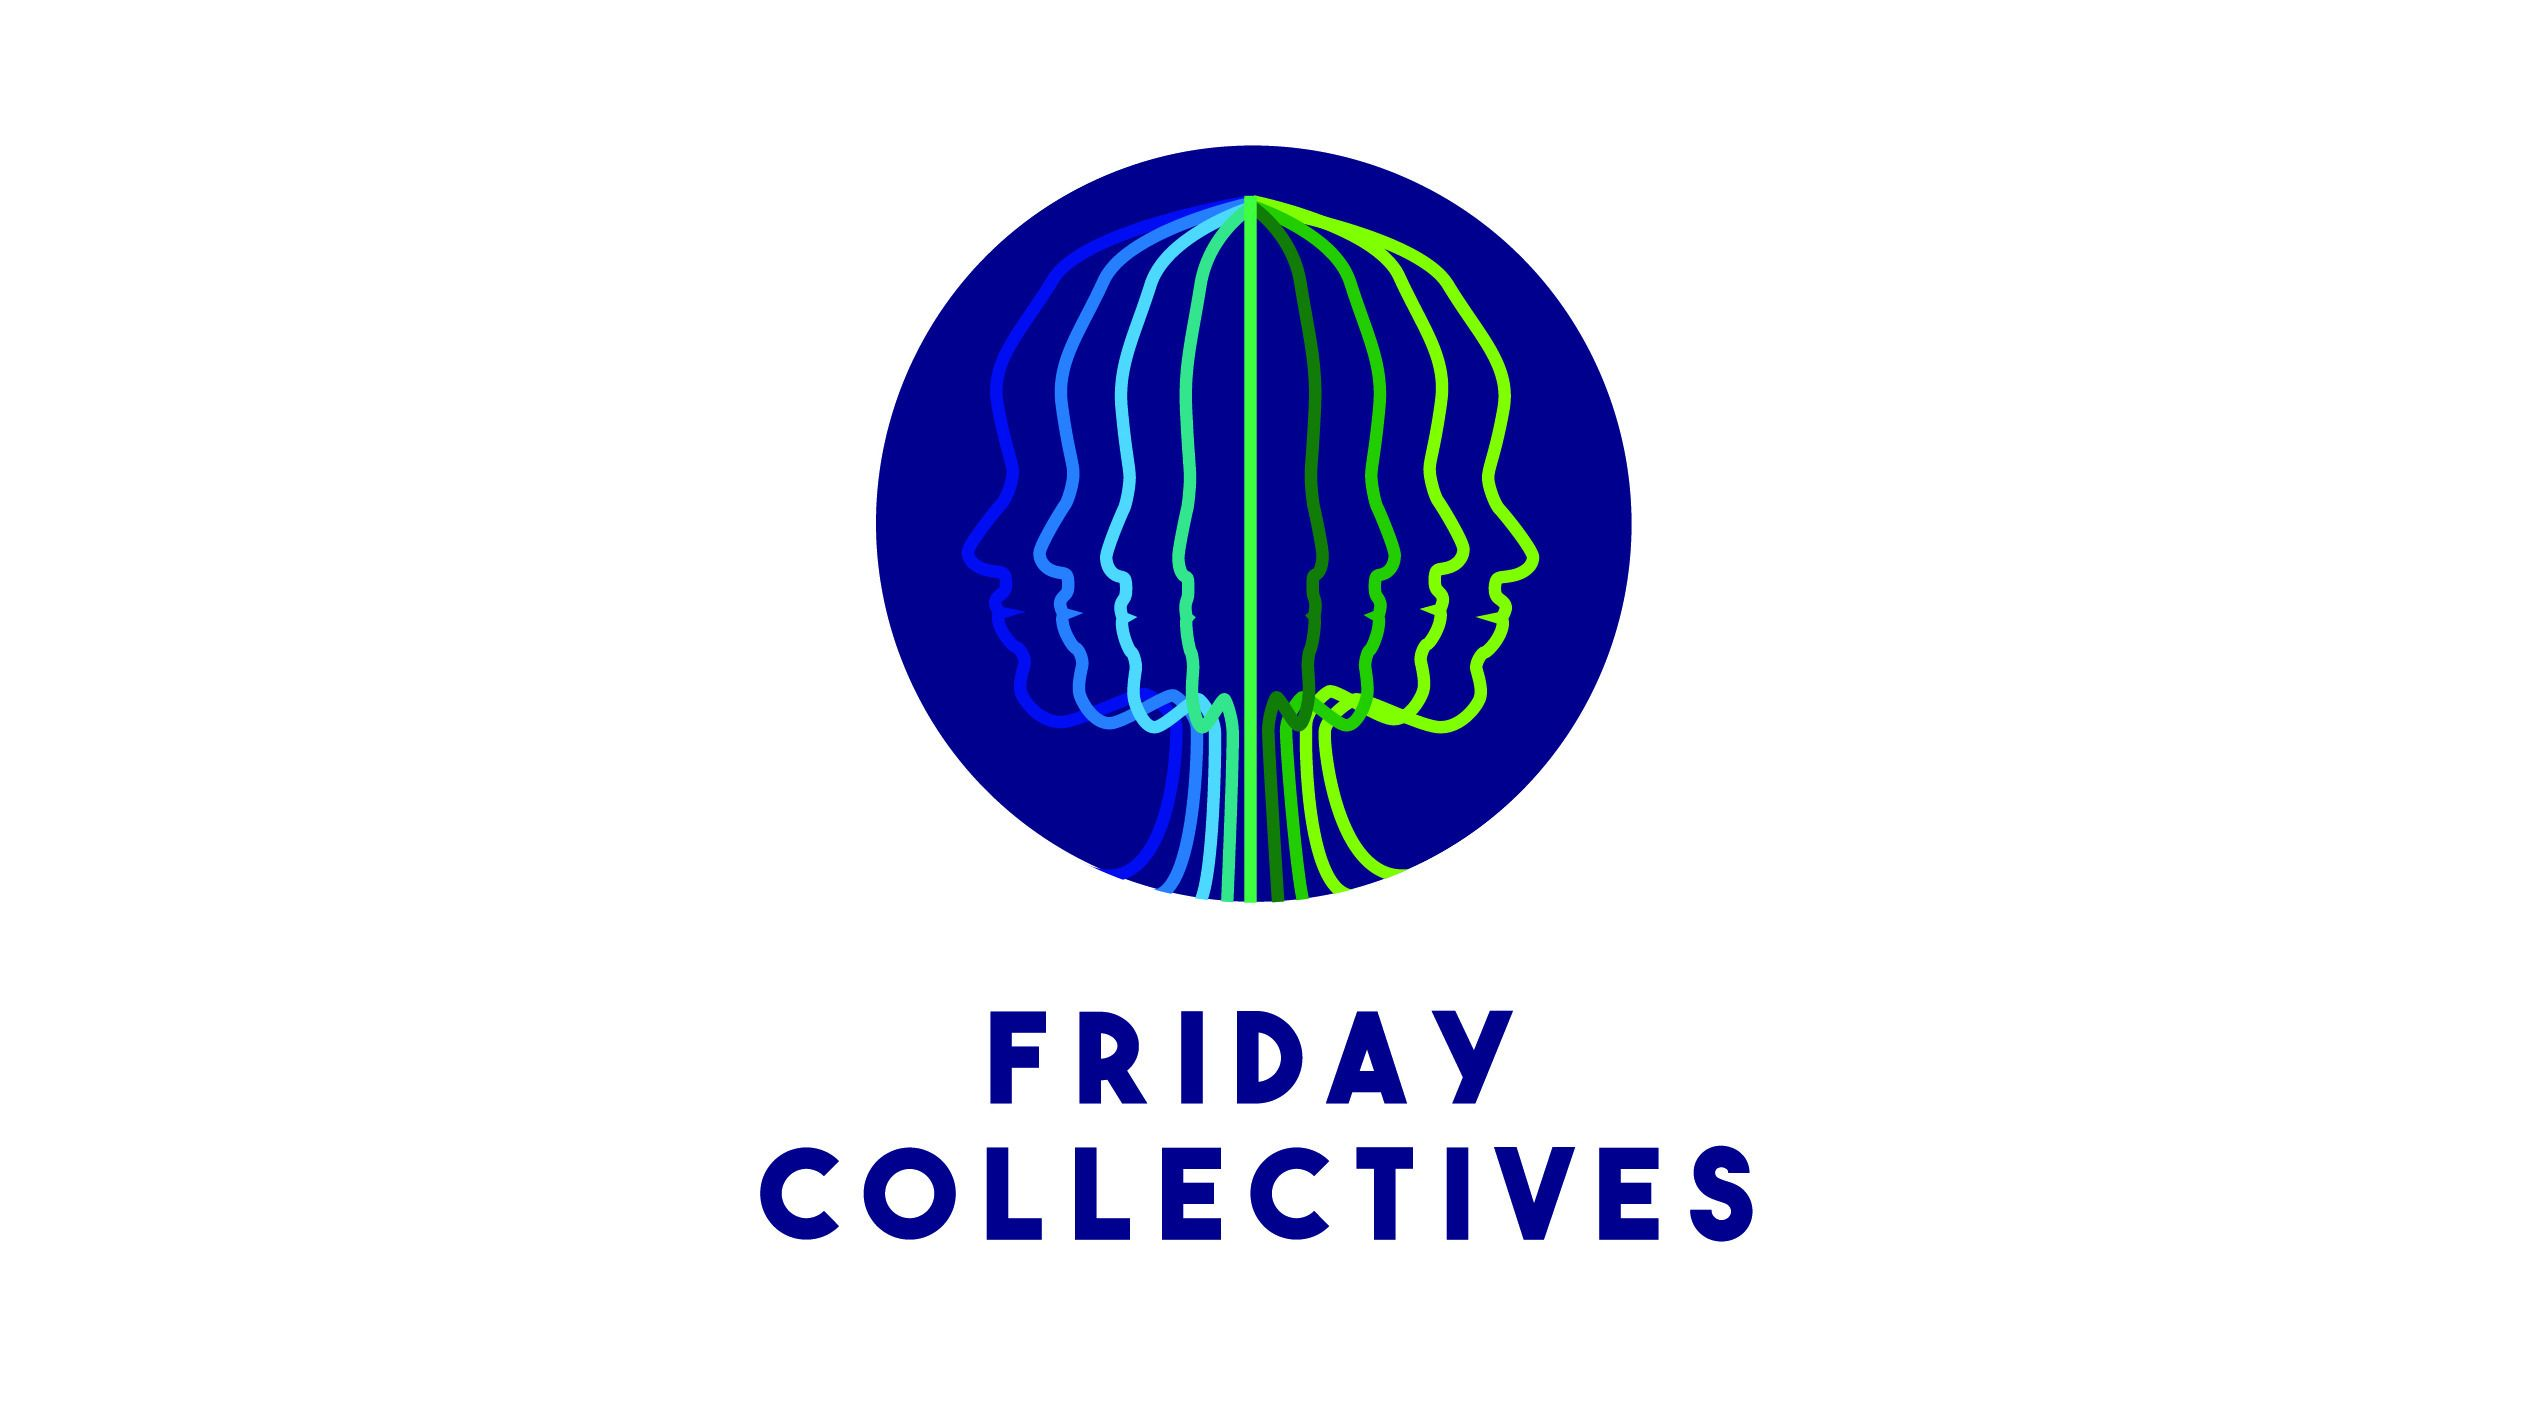 Friday Collectives